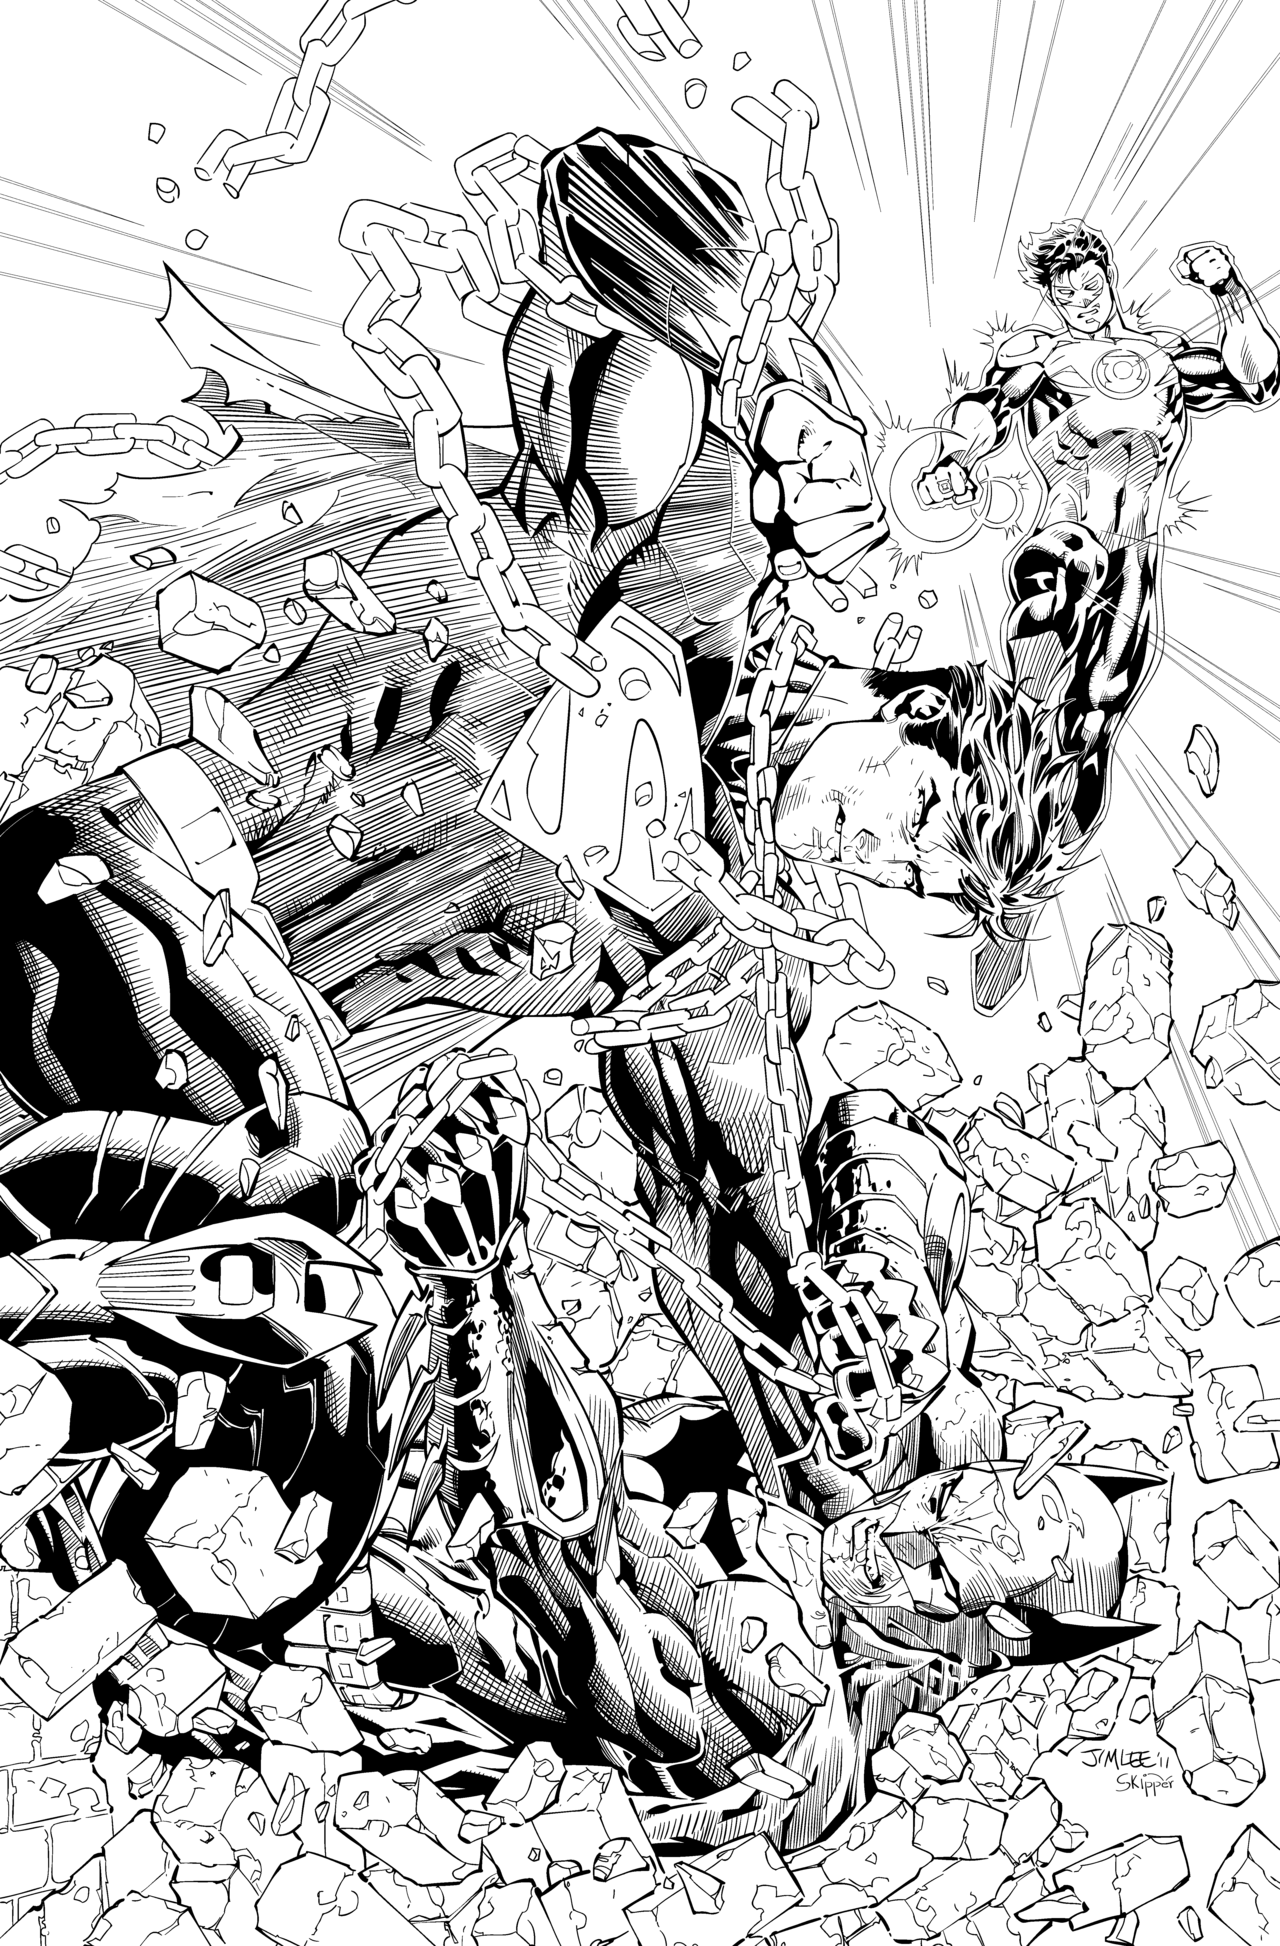 DC's Coloring Book Variant Theme for January 2016 - The Blog of Oa | 1946x1280